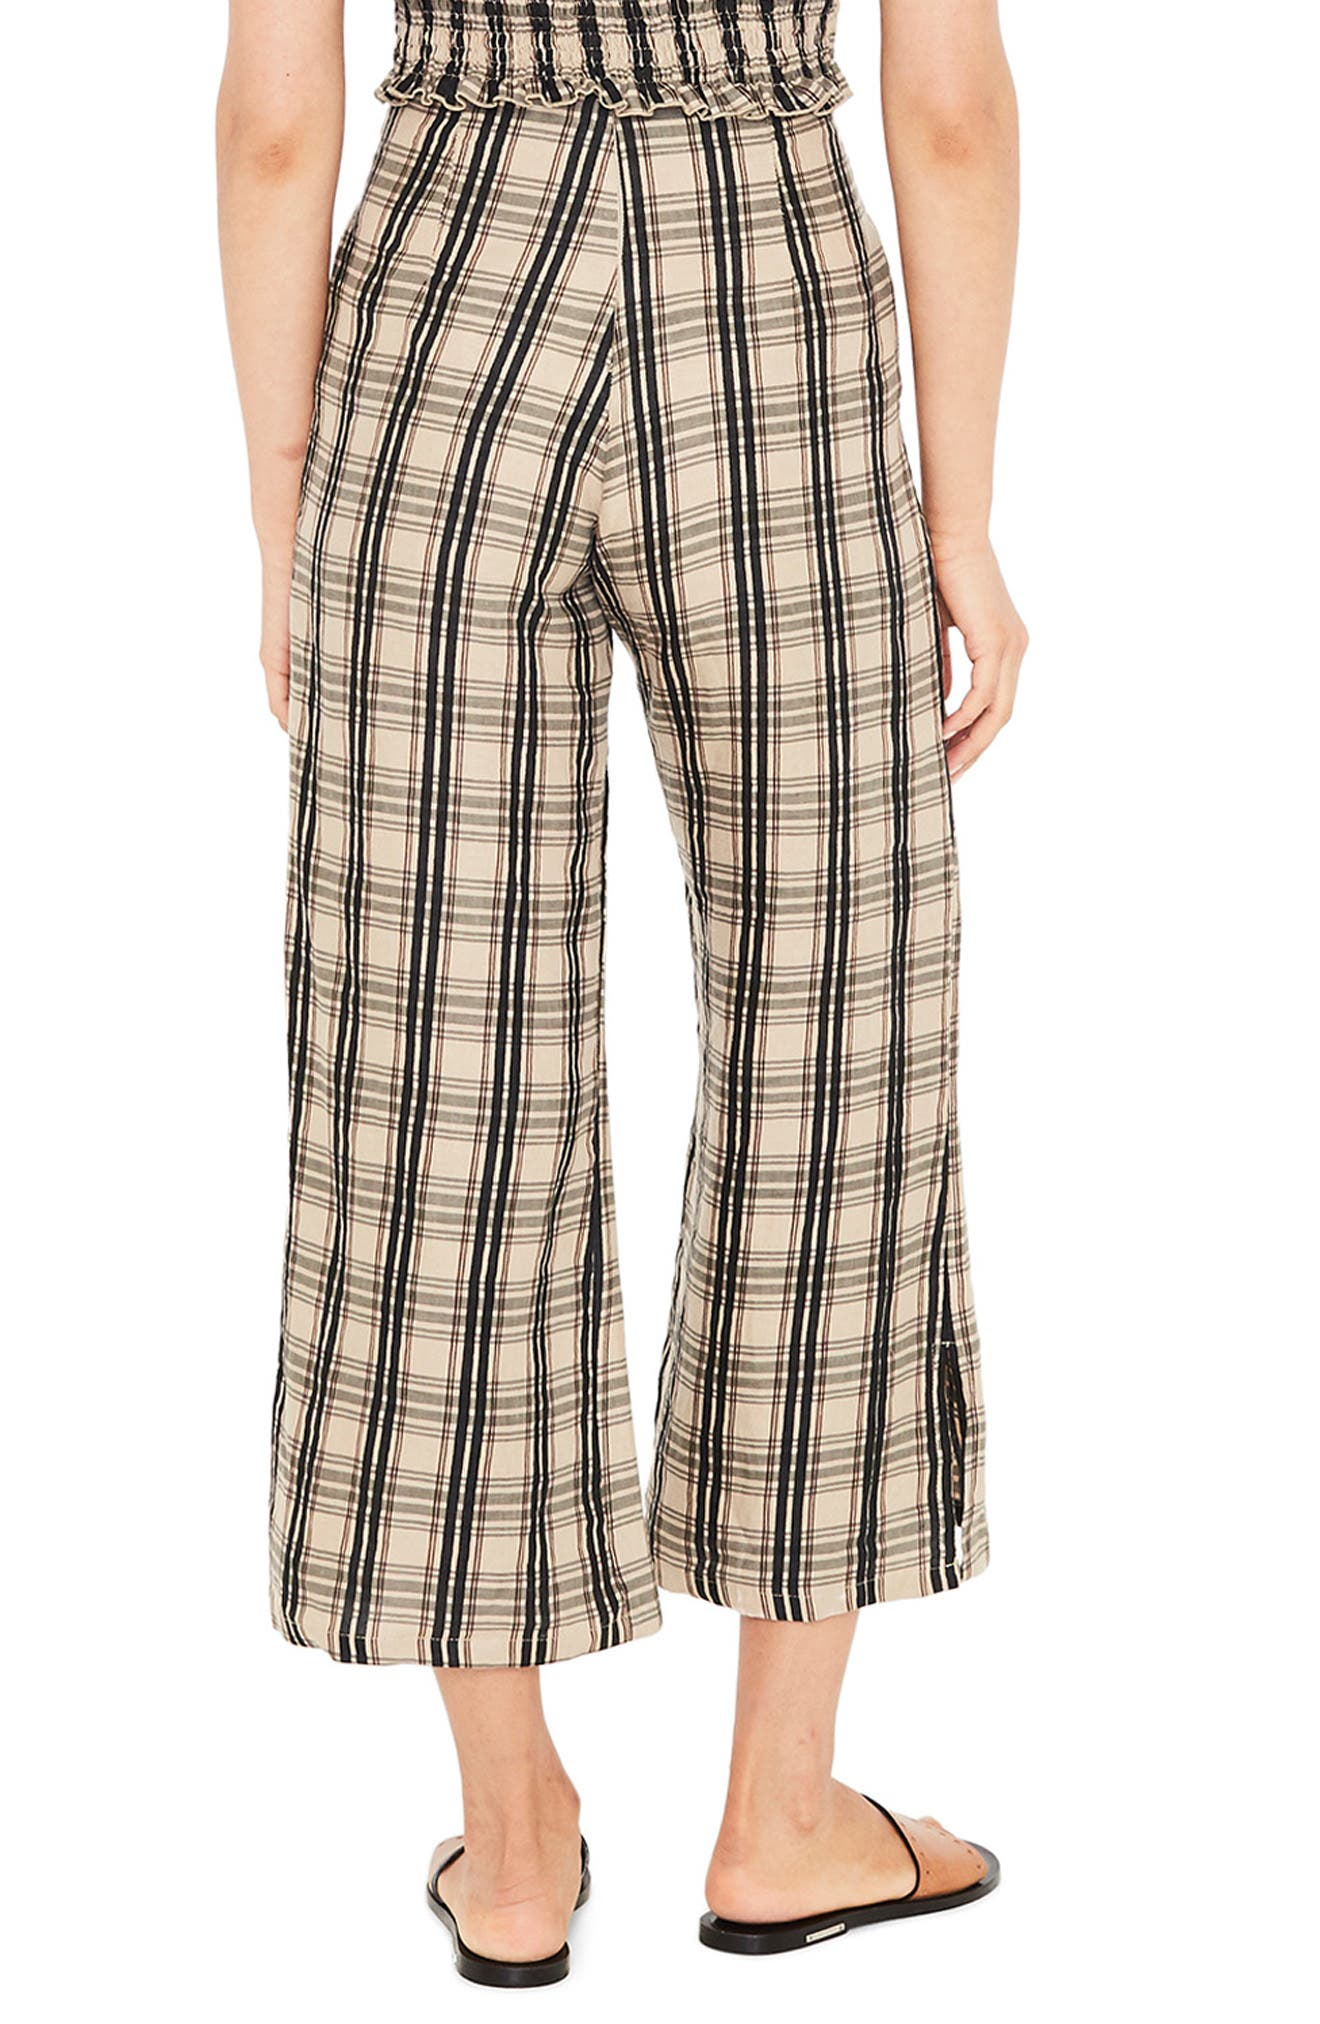 Carmen Plaid Crop Flare Pants,                             Alternate thumbnail 2, color,                             HILLARY PRINT